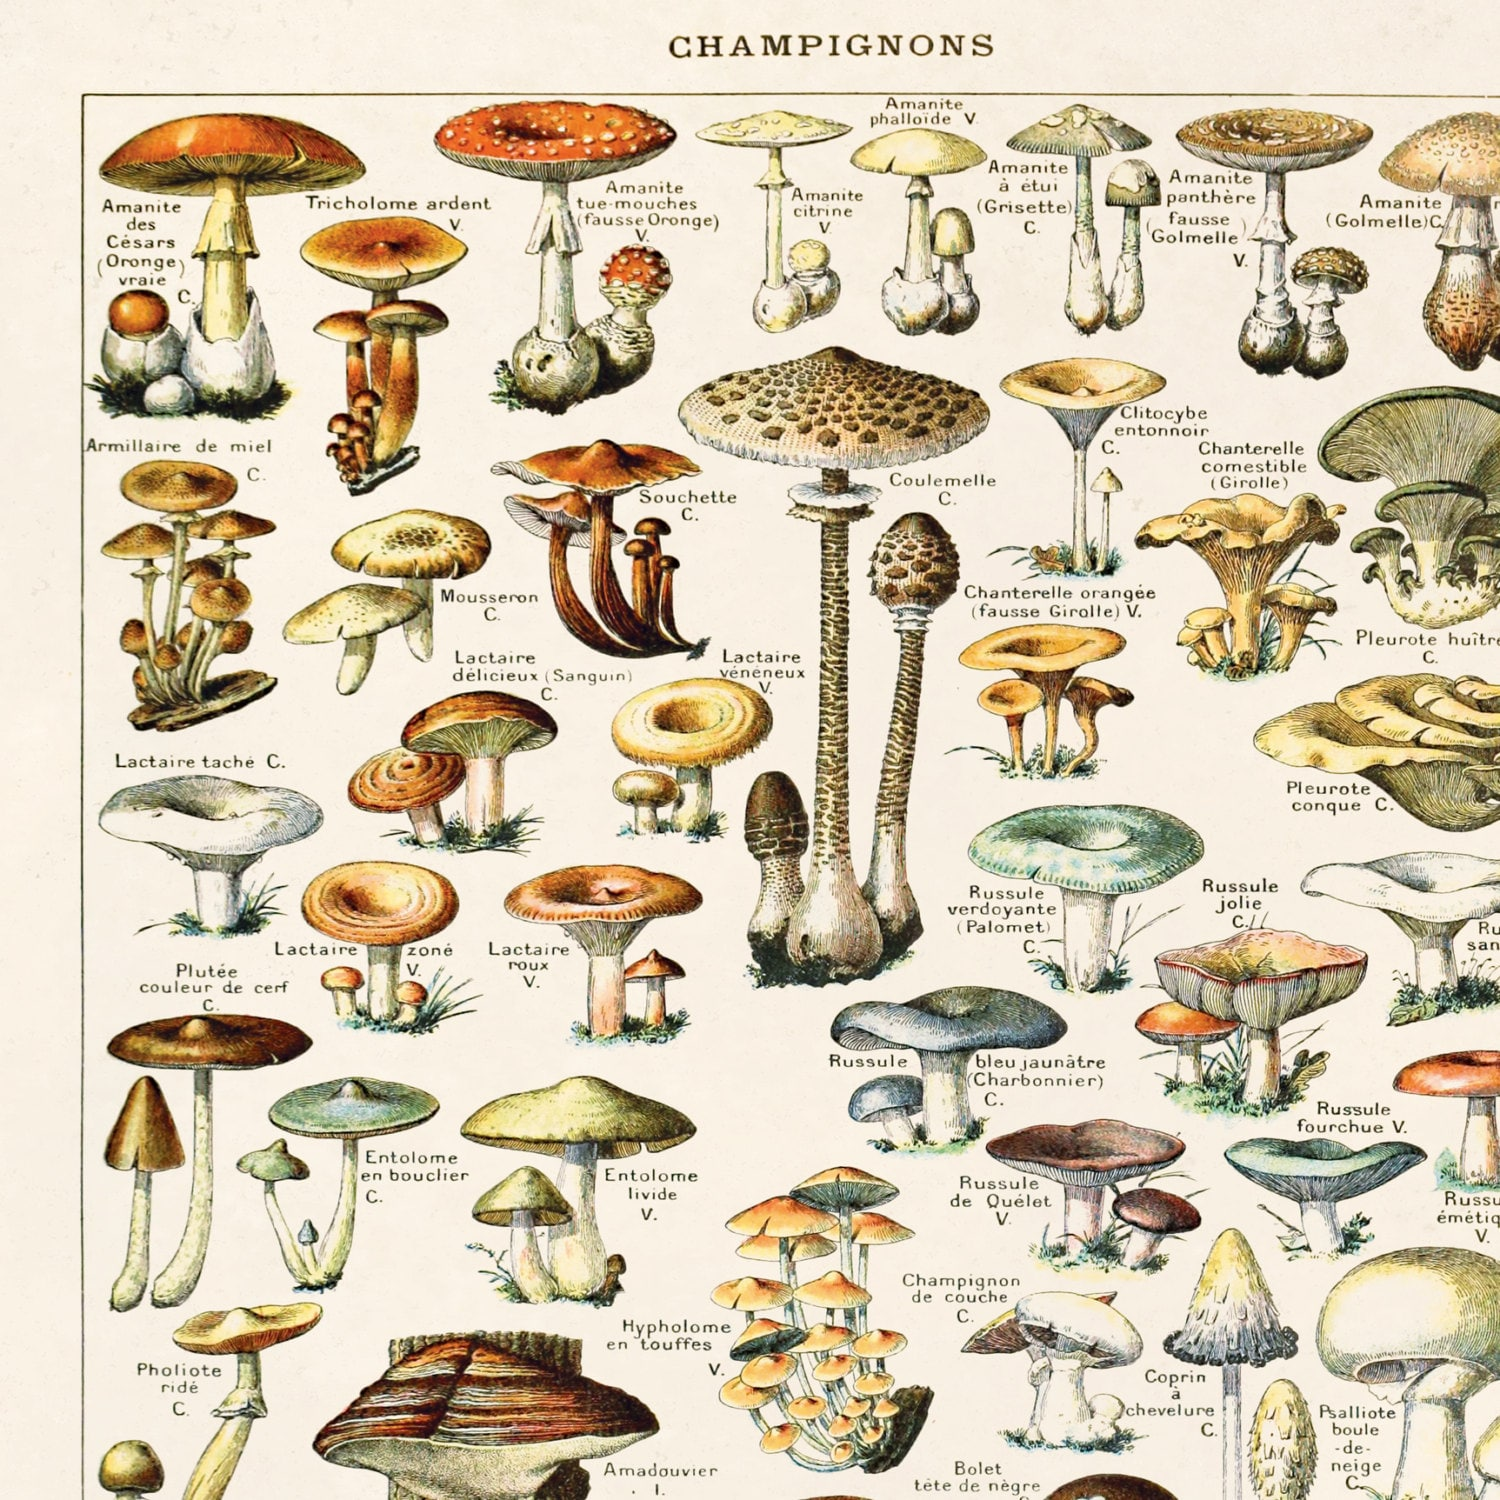 vintage french mushroom print by millot  botanical diagram antique print-  variety of mushrooms and fungi educational chart diagram - b032p